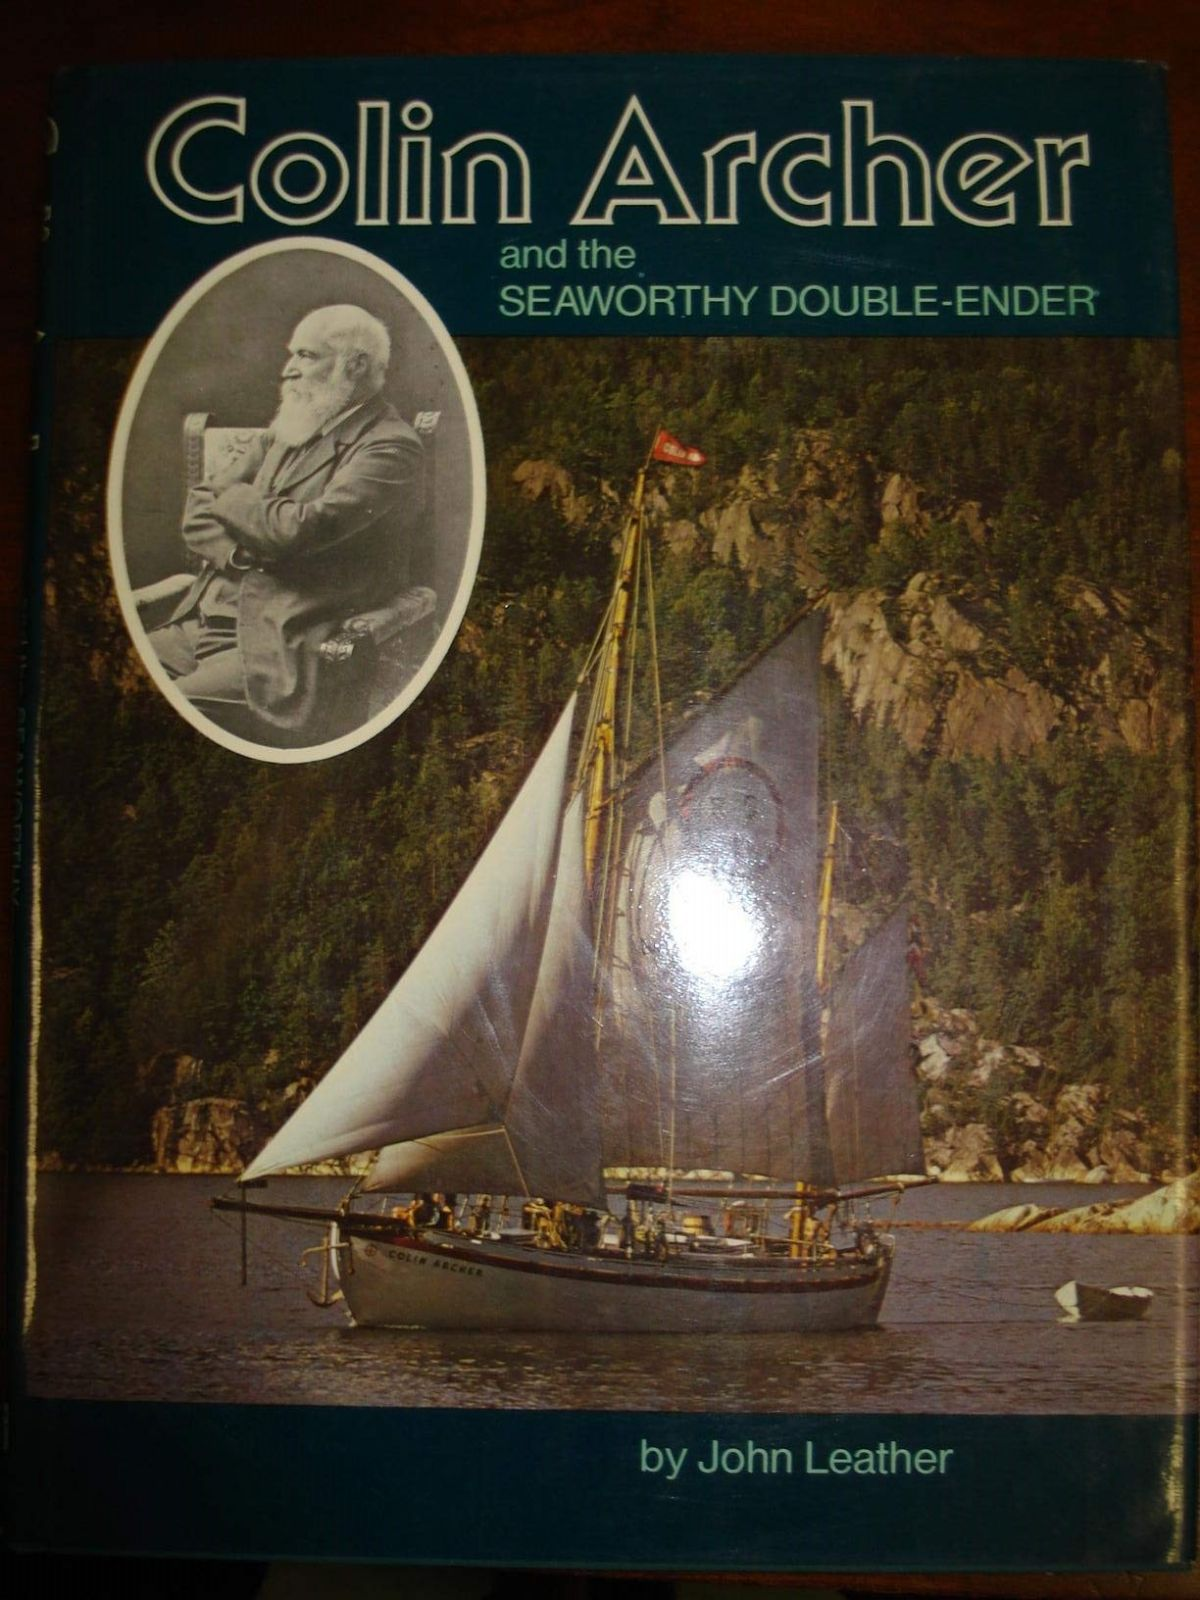 Colin Archer and the Seaworthy Double-ender